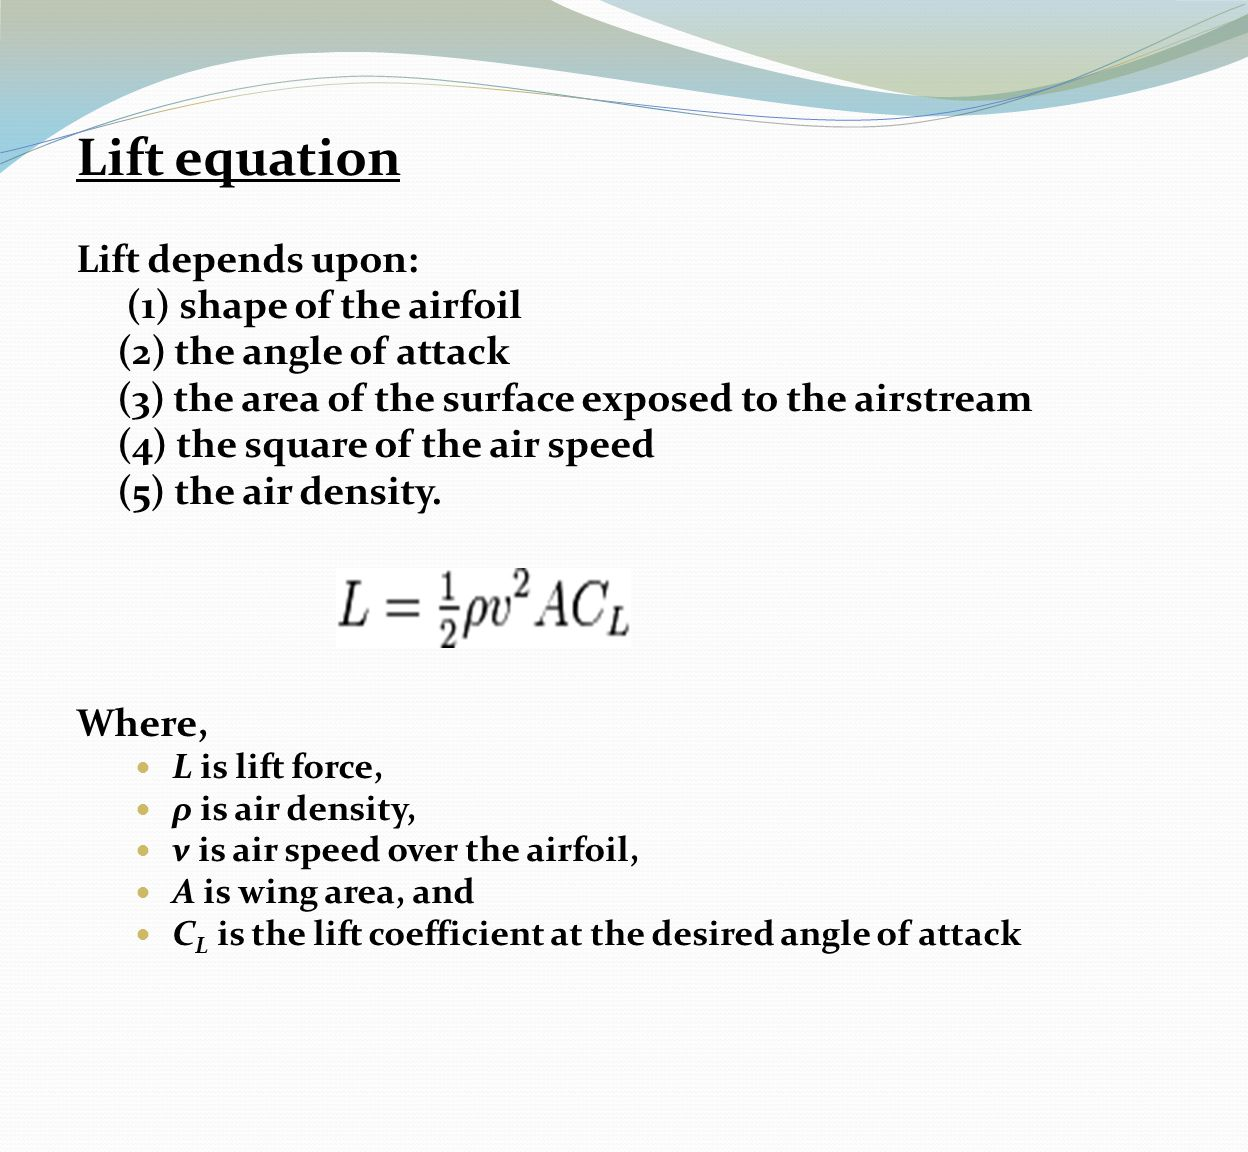 Air Flow Force Equation: LIFT MECHANISM OF THE HELICOPTER